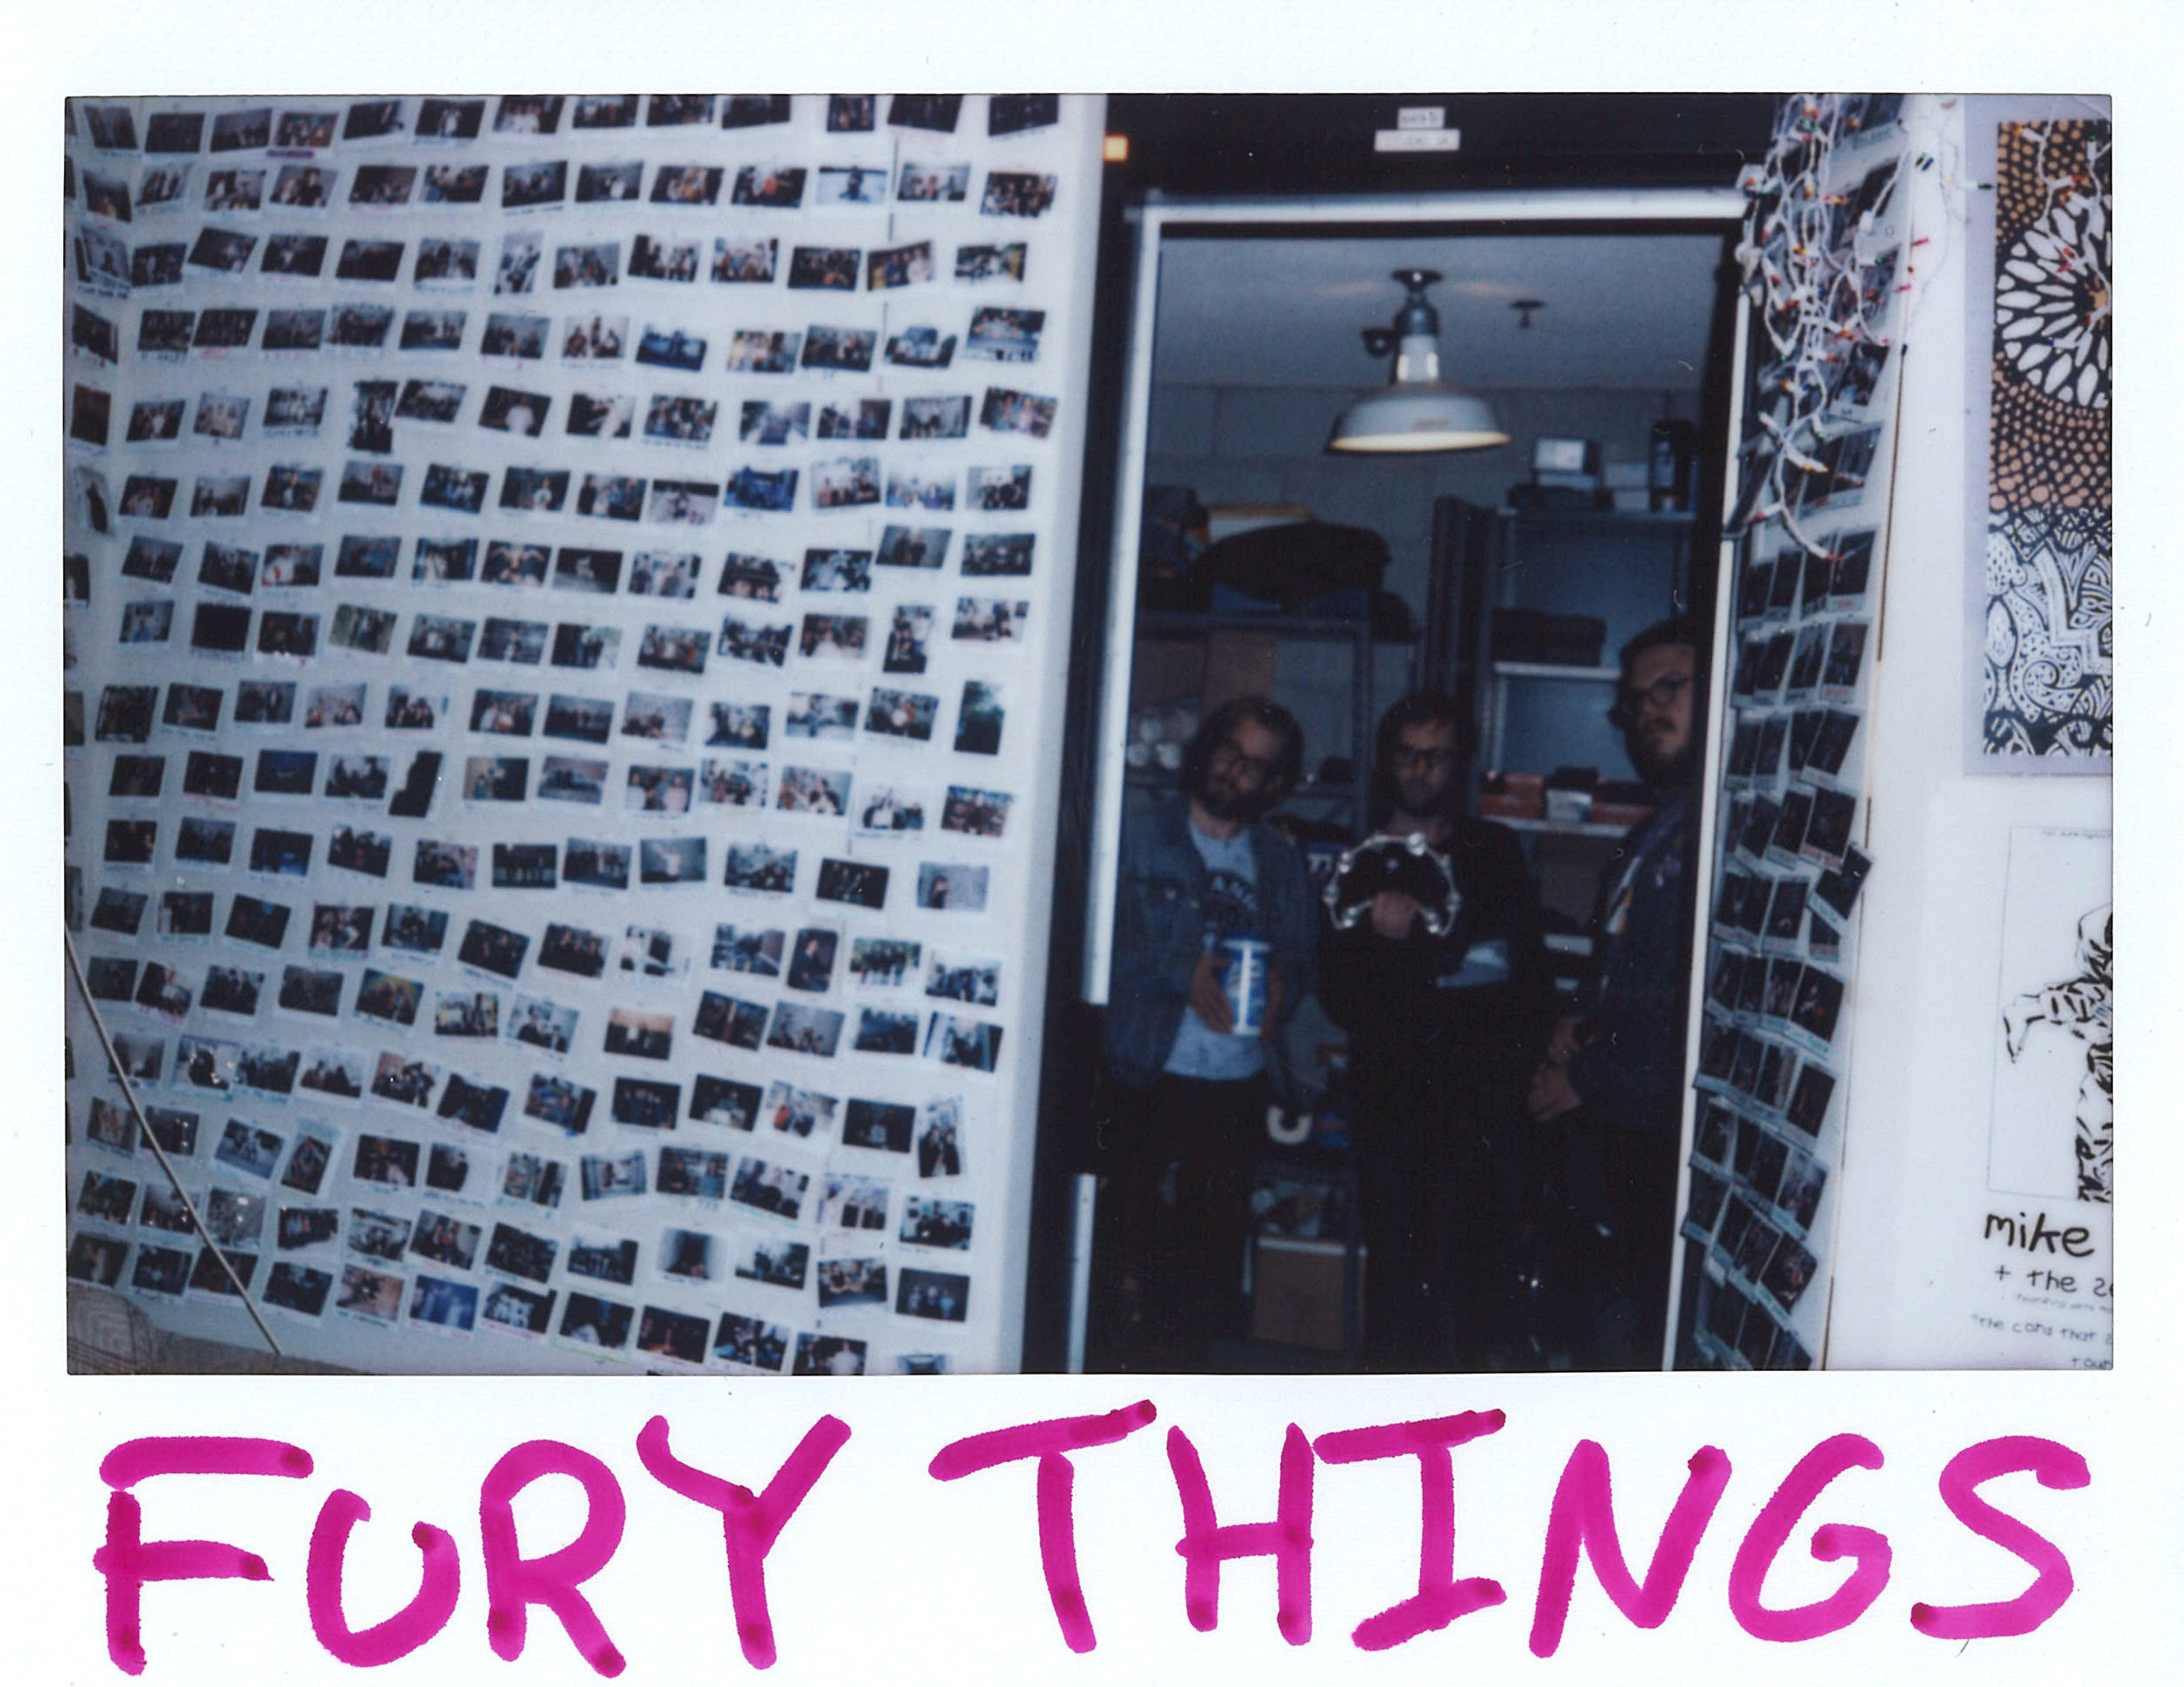 Fury Things